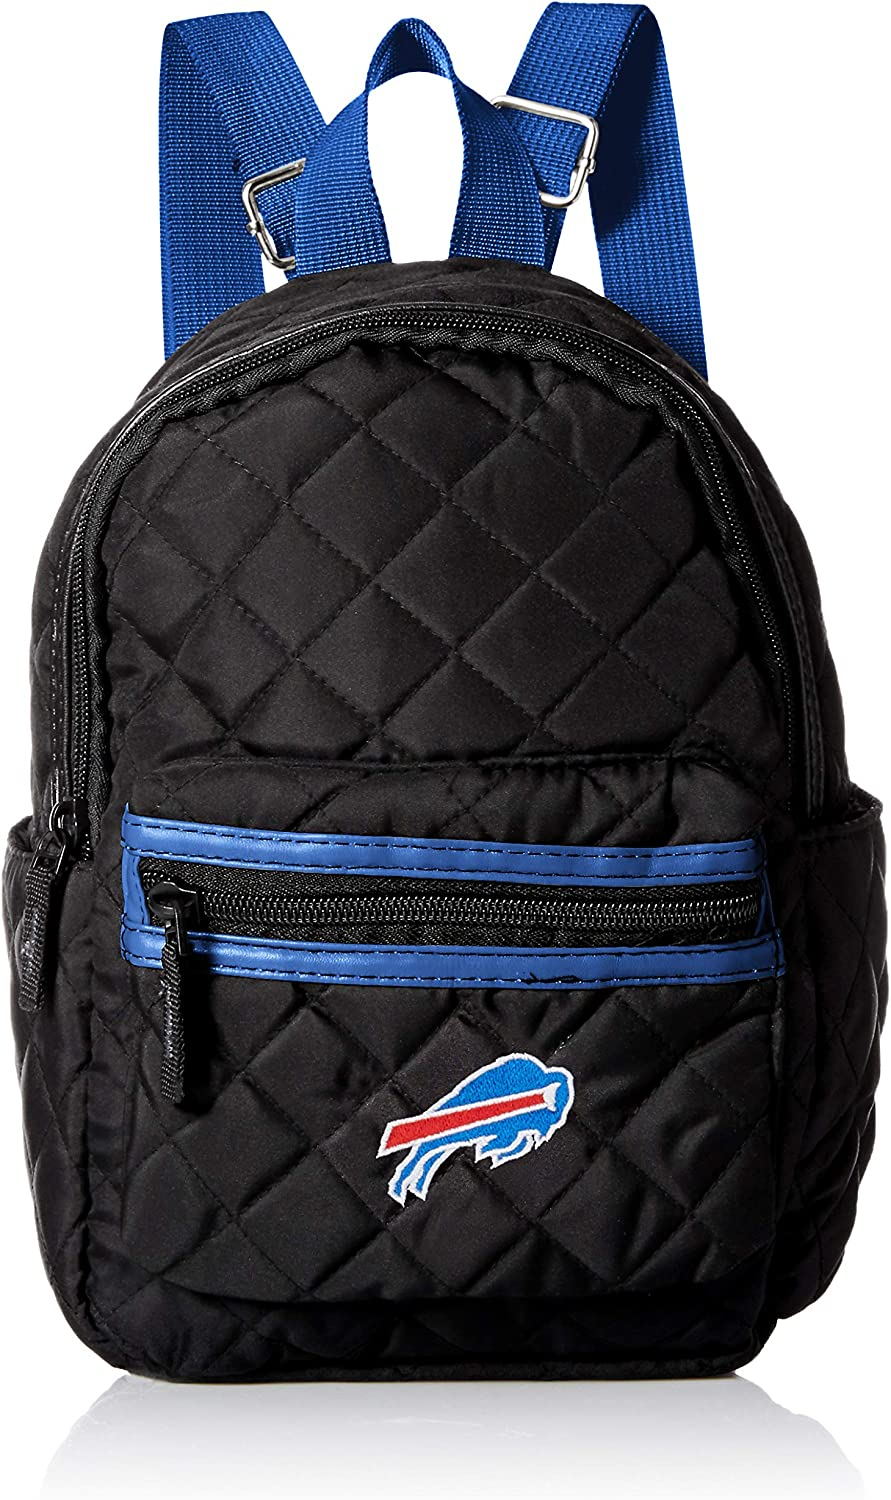 Chicago Bears Black Quilted Mini Backpack Womens